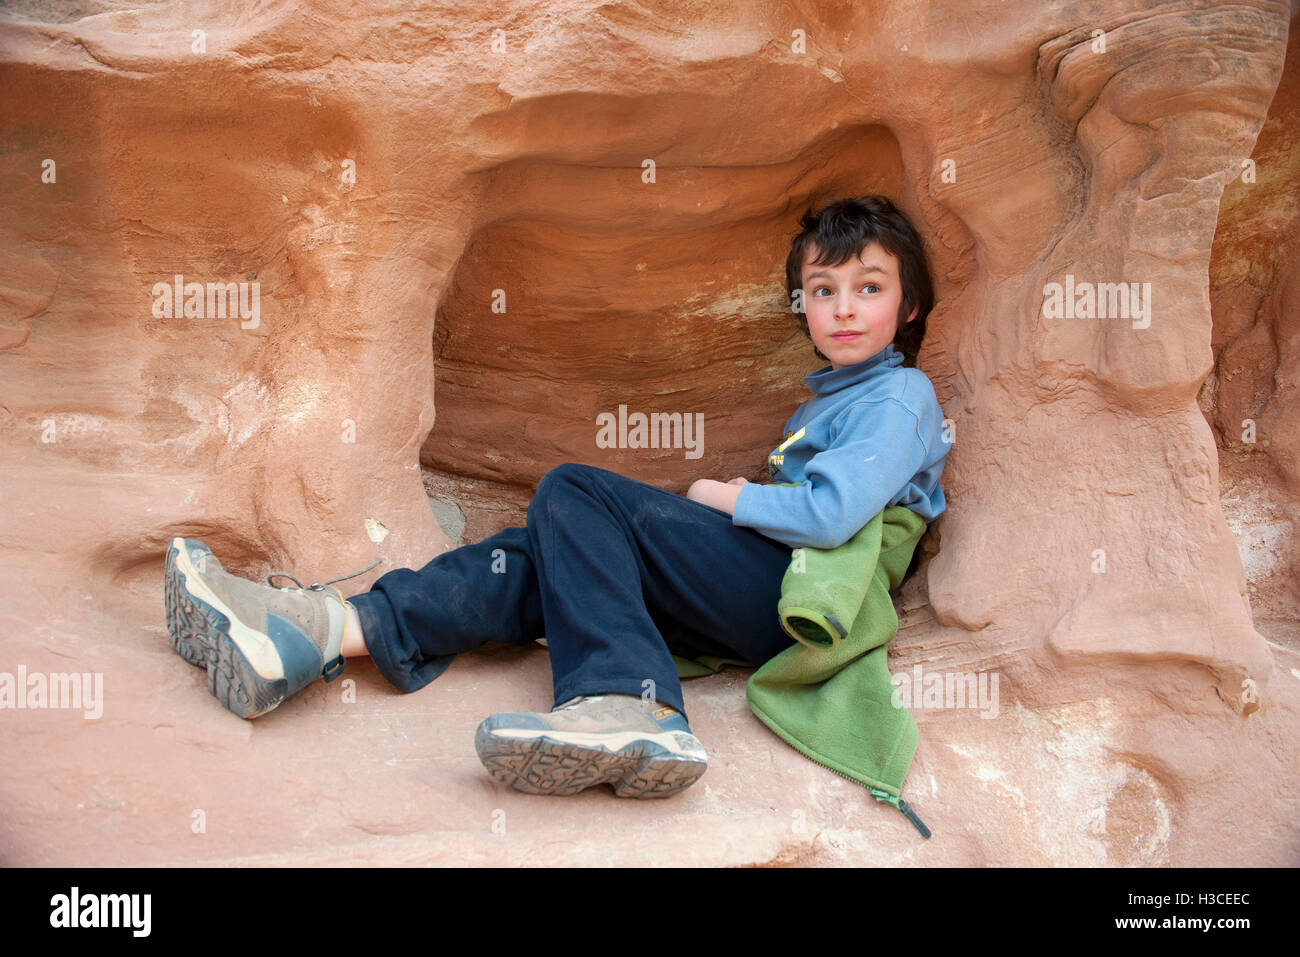 Boy relaxing on rock formation at Capitol Reef National Park, Utah, USA - Stock Image